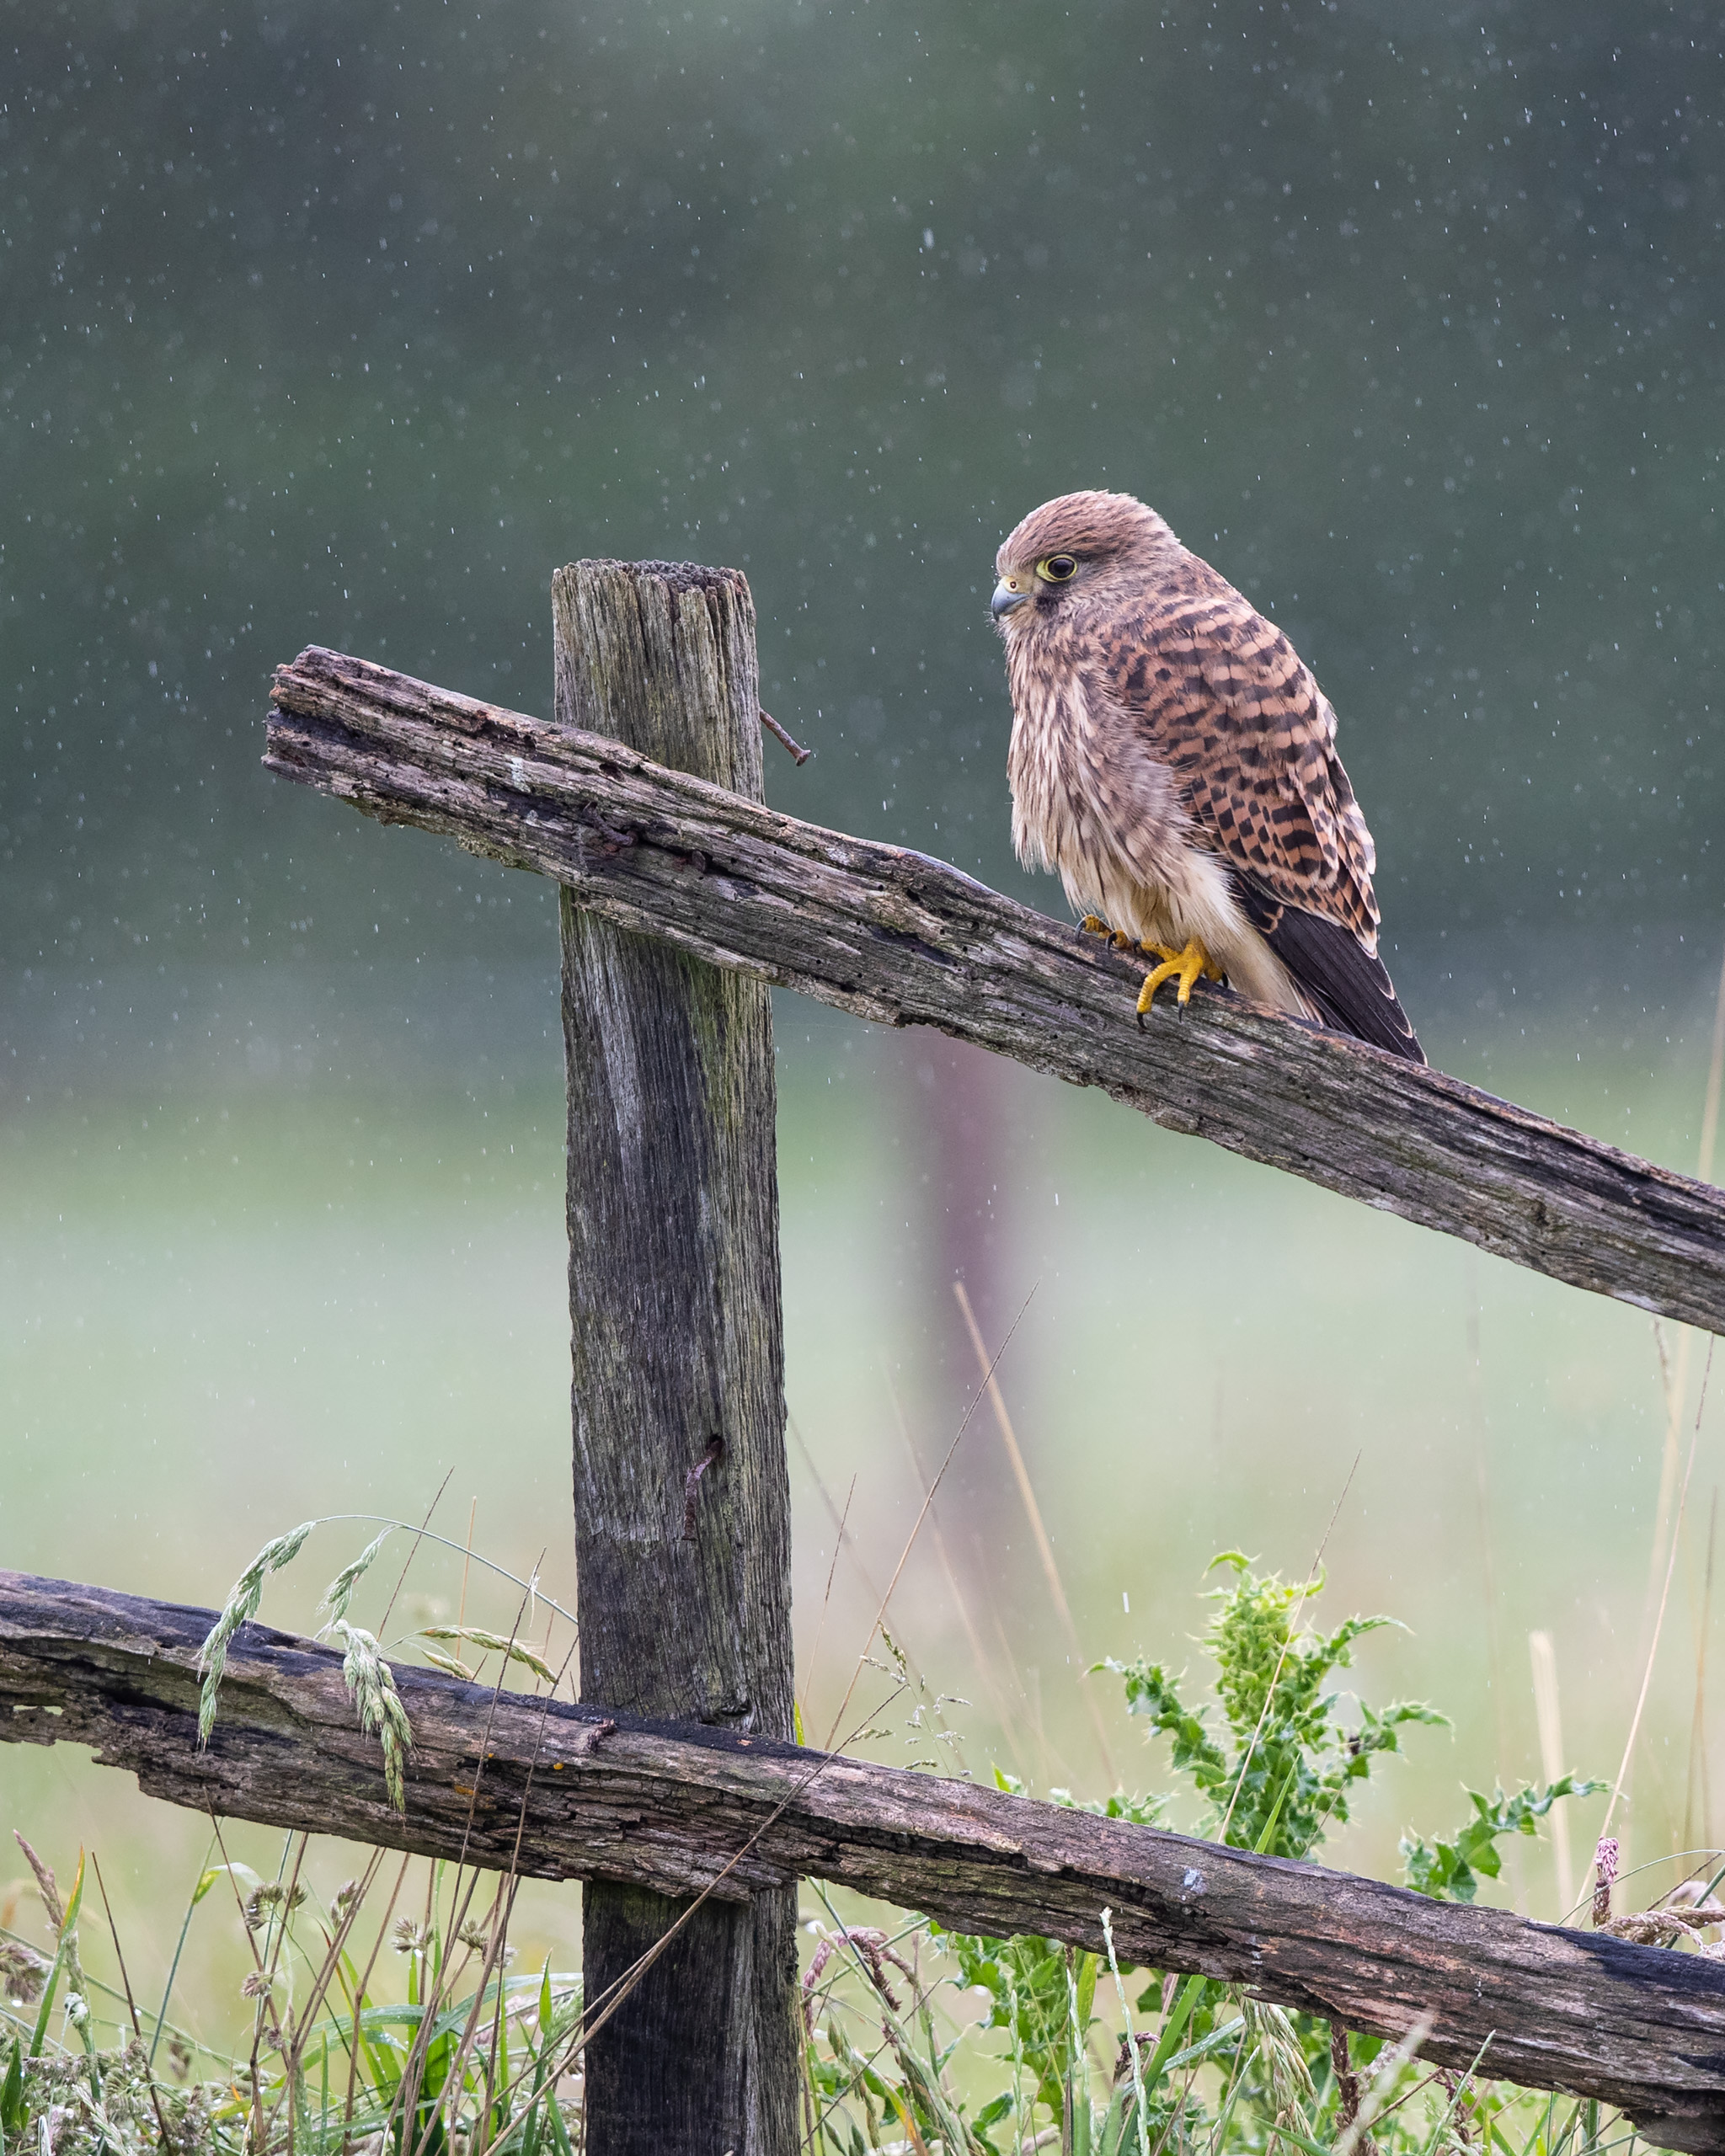 Image 01: Young Kestrel waiting for an adult to bring some food in last week's English summer rain. At higher shutters speeds (1/640 was used here) the rain can be frozen in the image to look more like drops. This was shot at Wildlife Photography Hides' 'Wired Hide'.